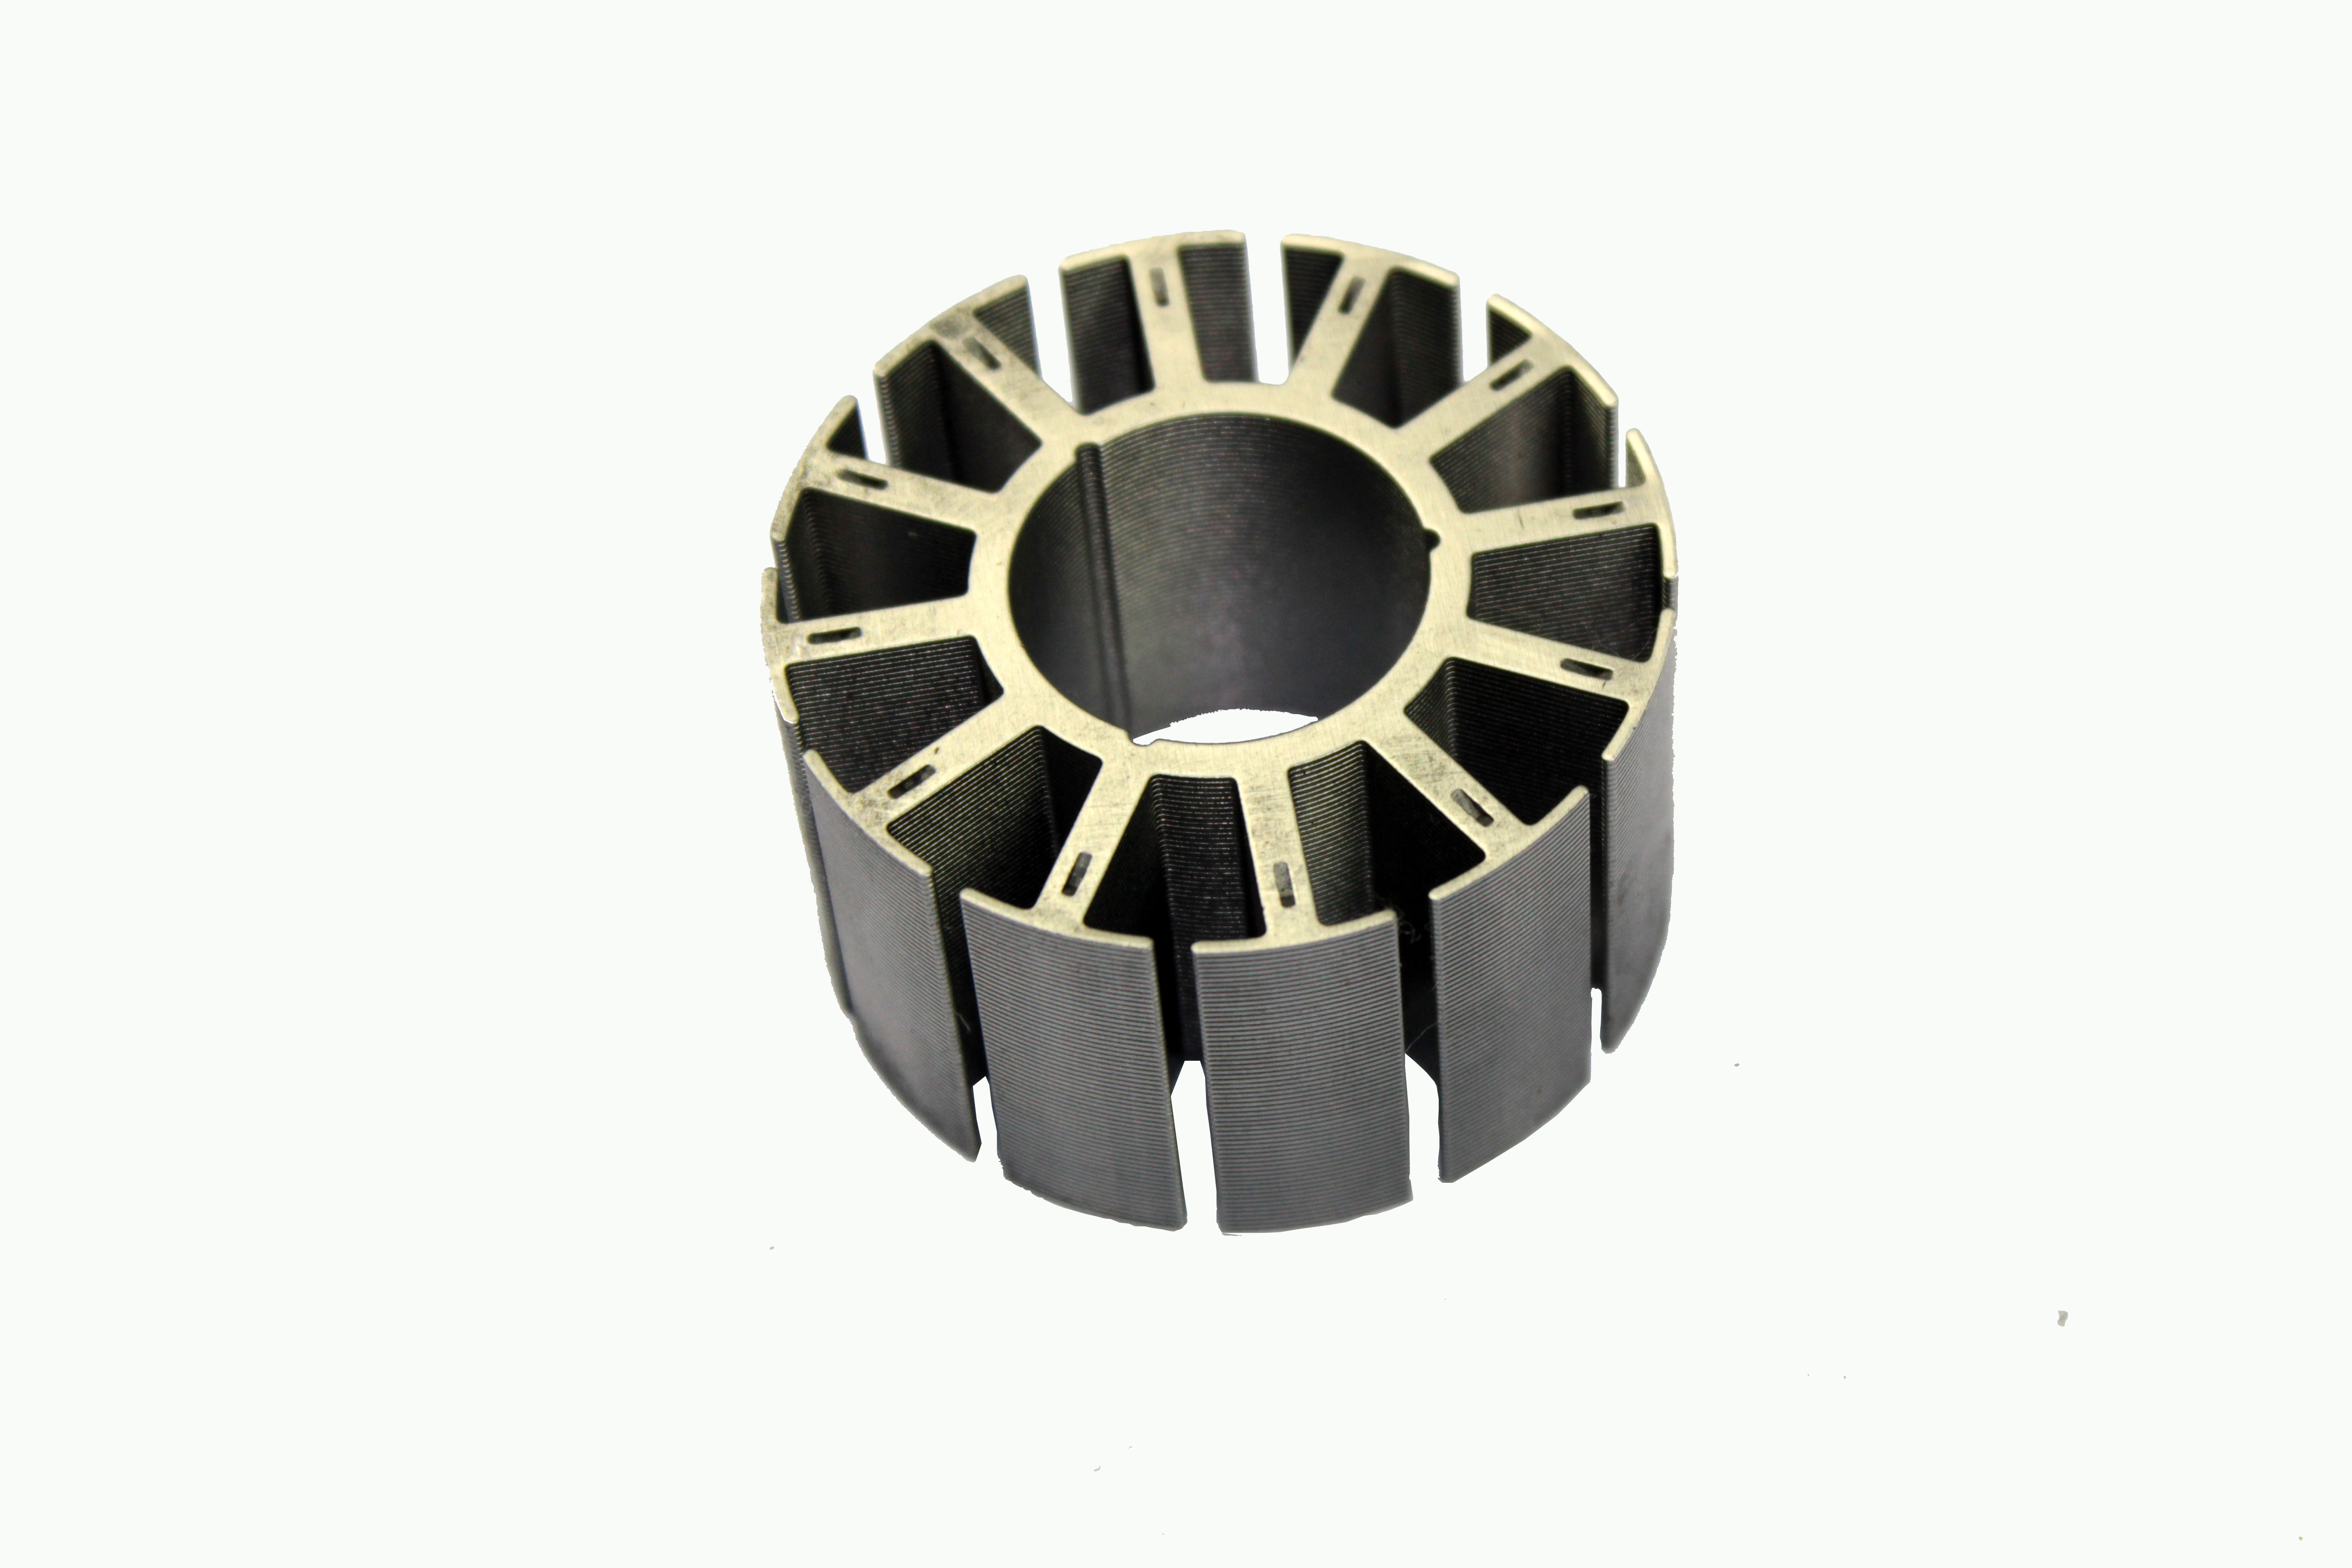 China Supplier, Best Price Rotor and Stator for Product Machine